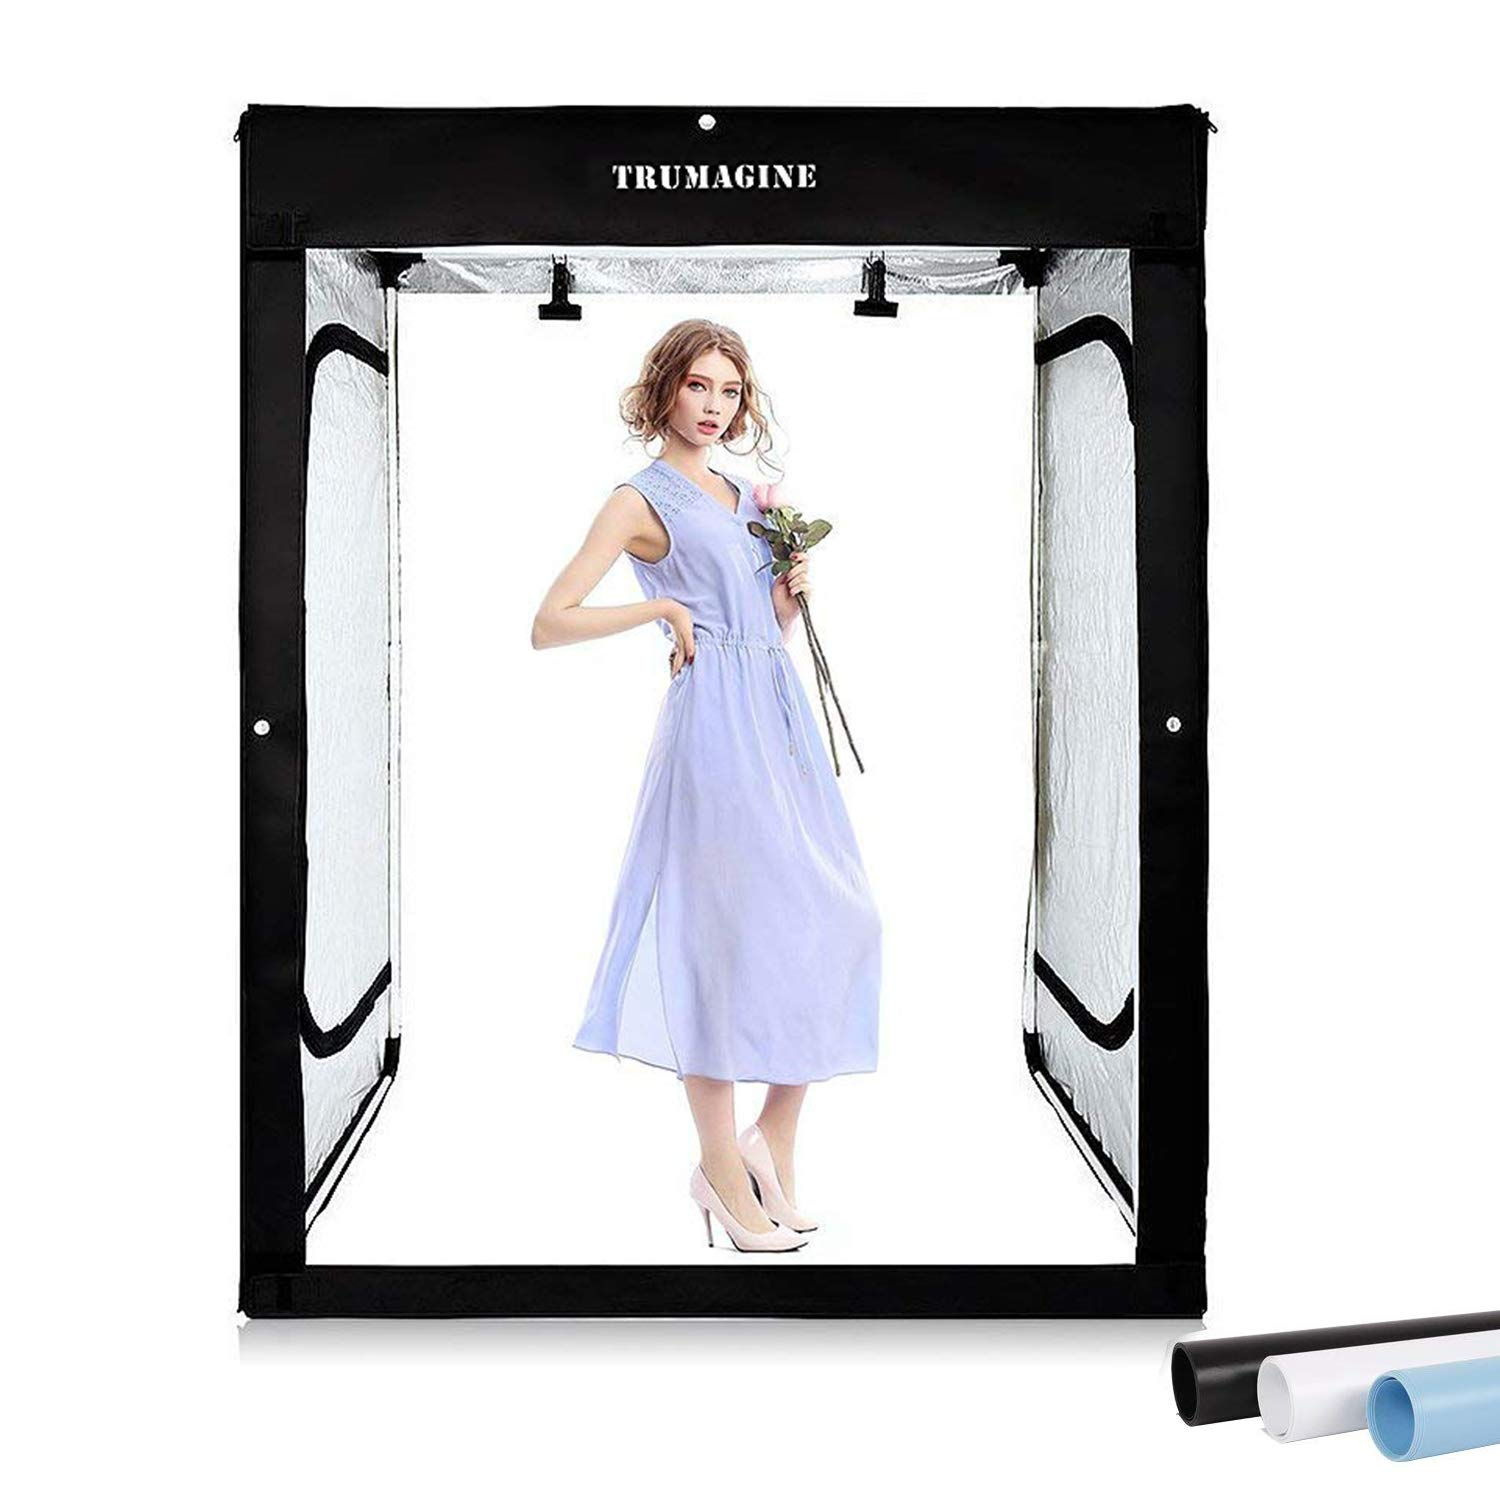 47x39x78 inch Professional Photography LED Studio Large Lightbox Dimmable Photo Video Continuous Lighting Cube Shooting Tent Kit with 3 Colors Backdrops and Carrying Bag by TRUMAGINE